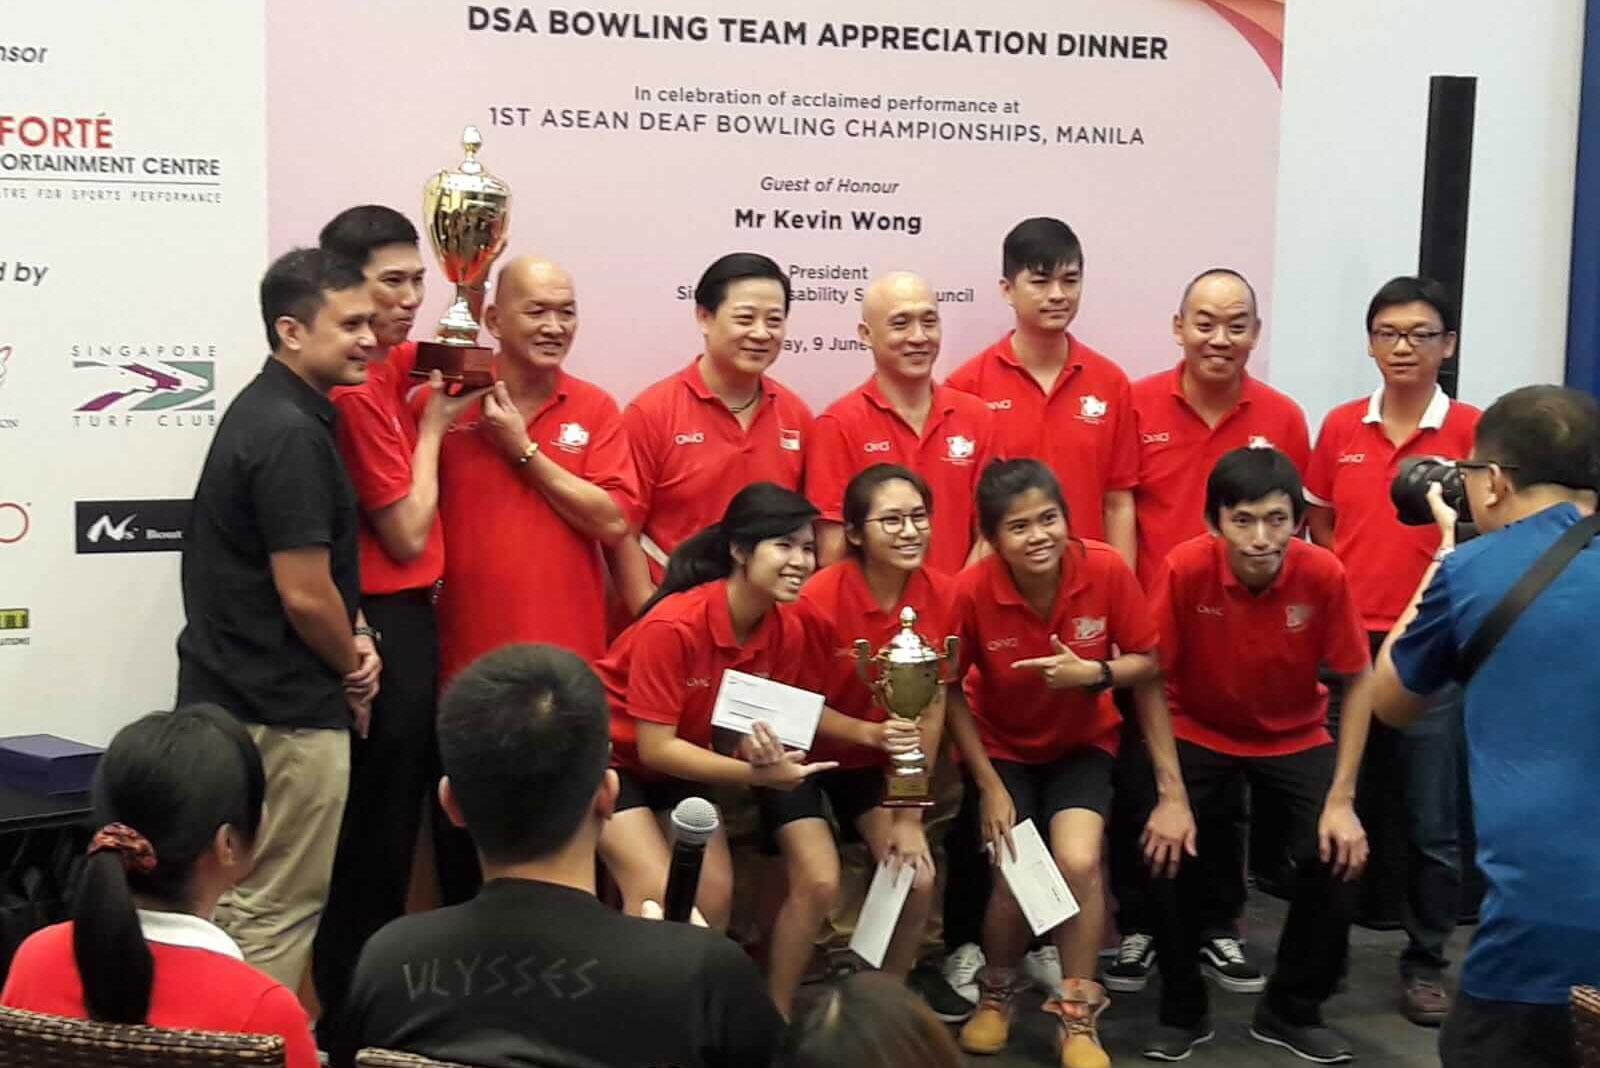 DSA BOWLING TEAM APPRECIATION DINNER